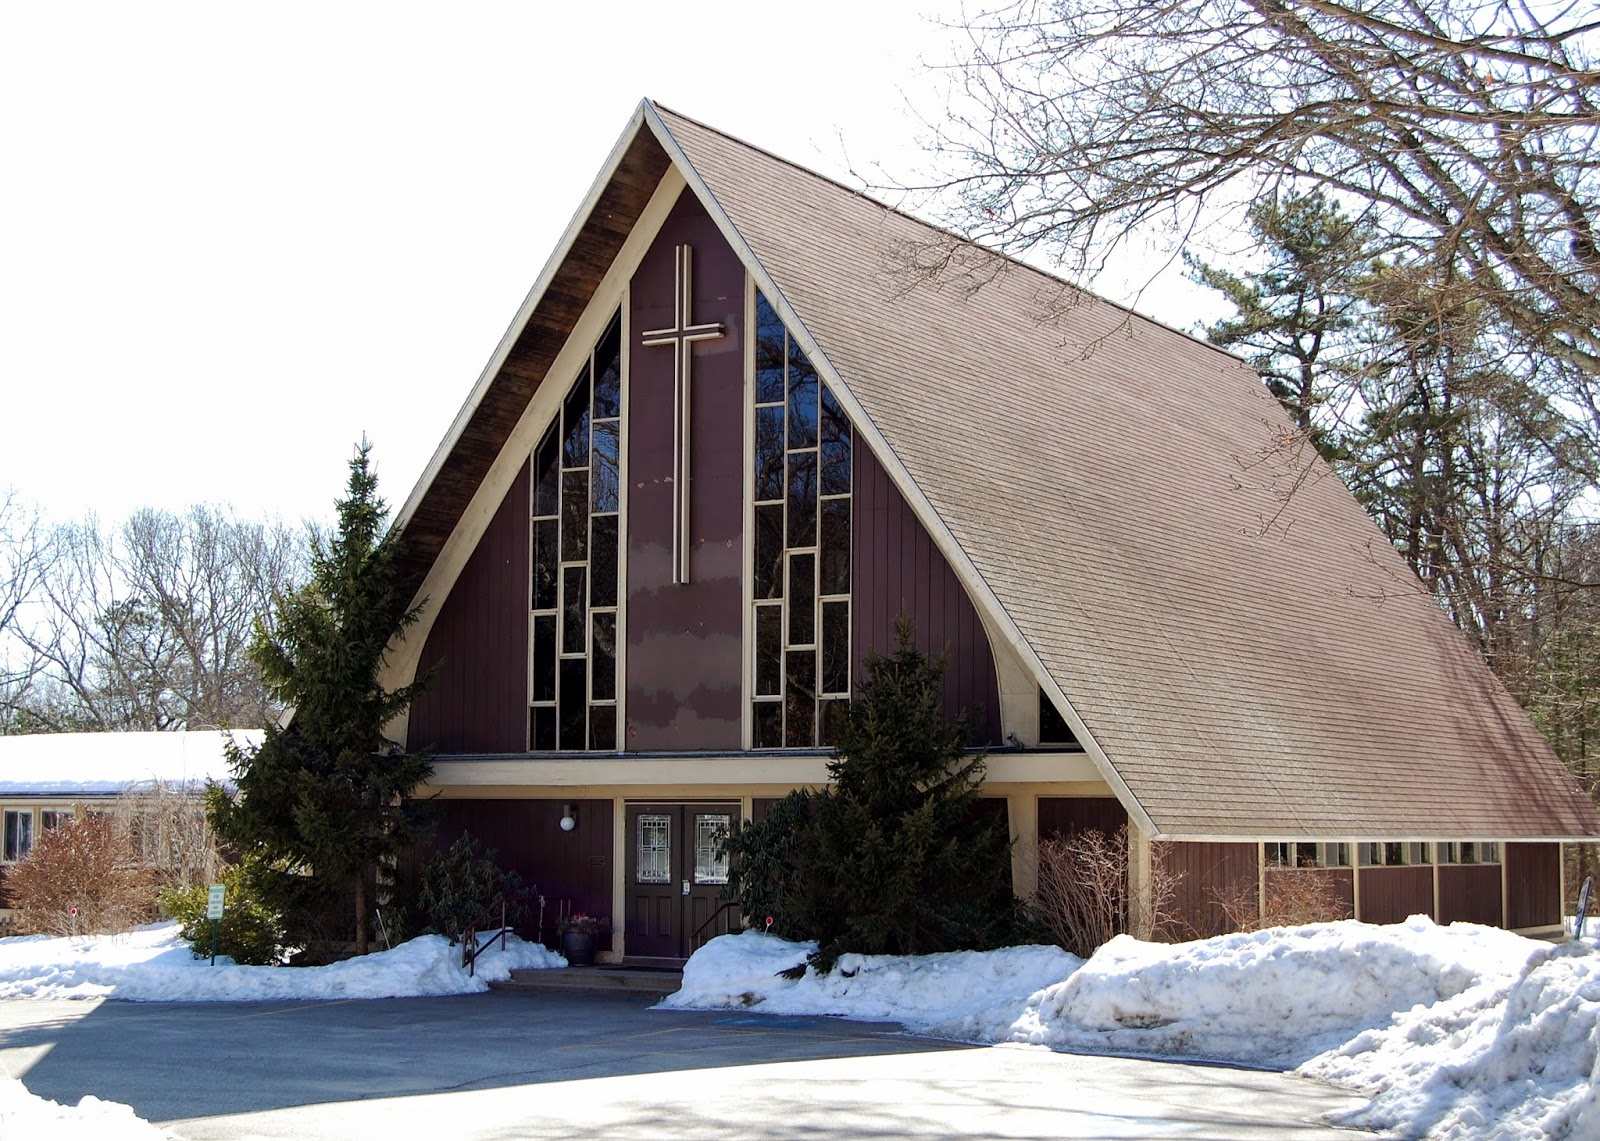 St. John's, 237 Pleasant Street, Franklin in winter time